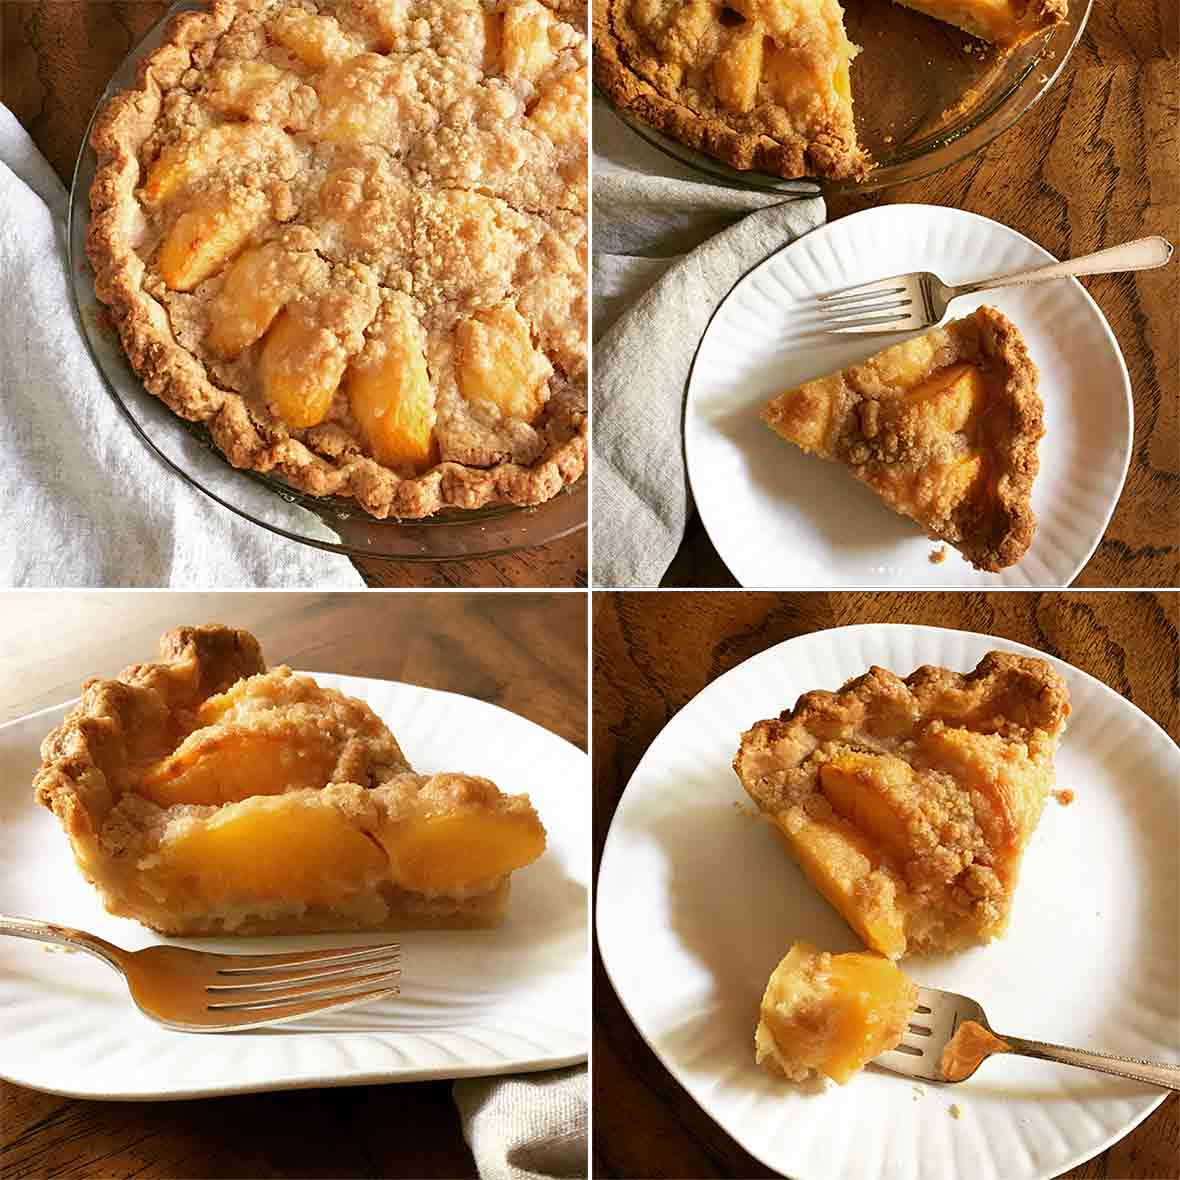 Four pictures of a peach and creme fraiche pie